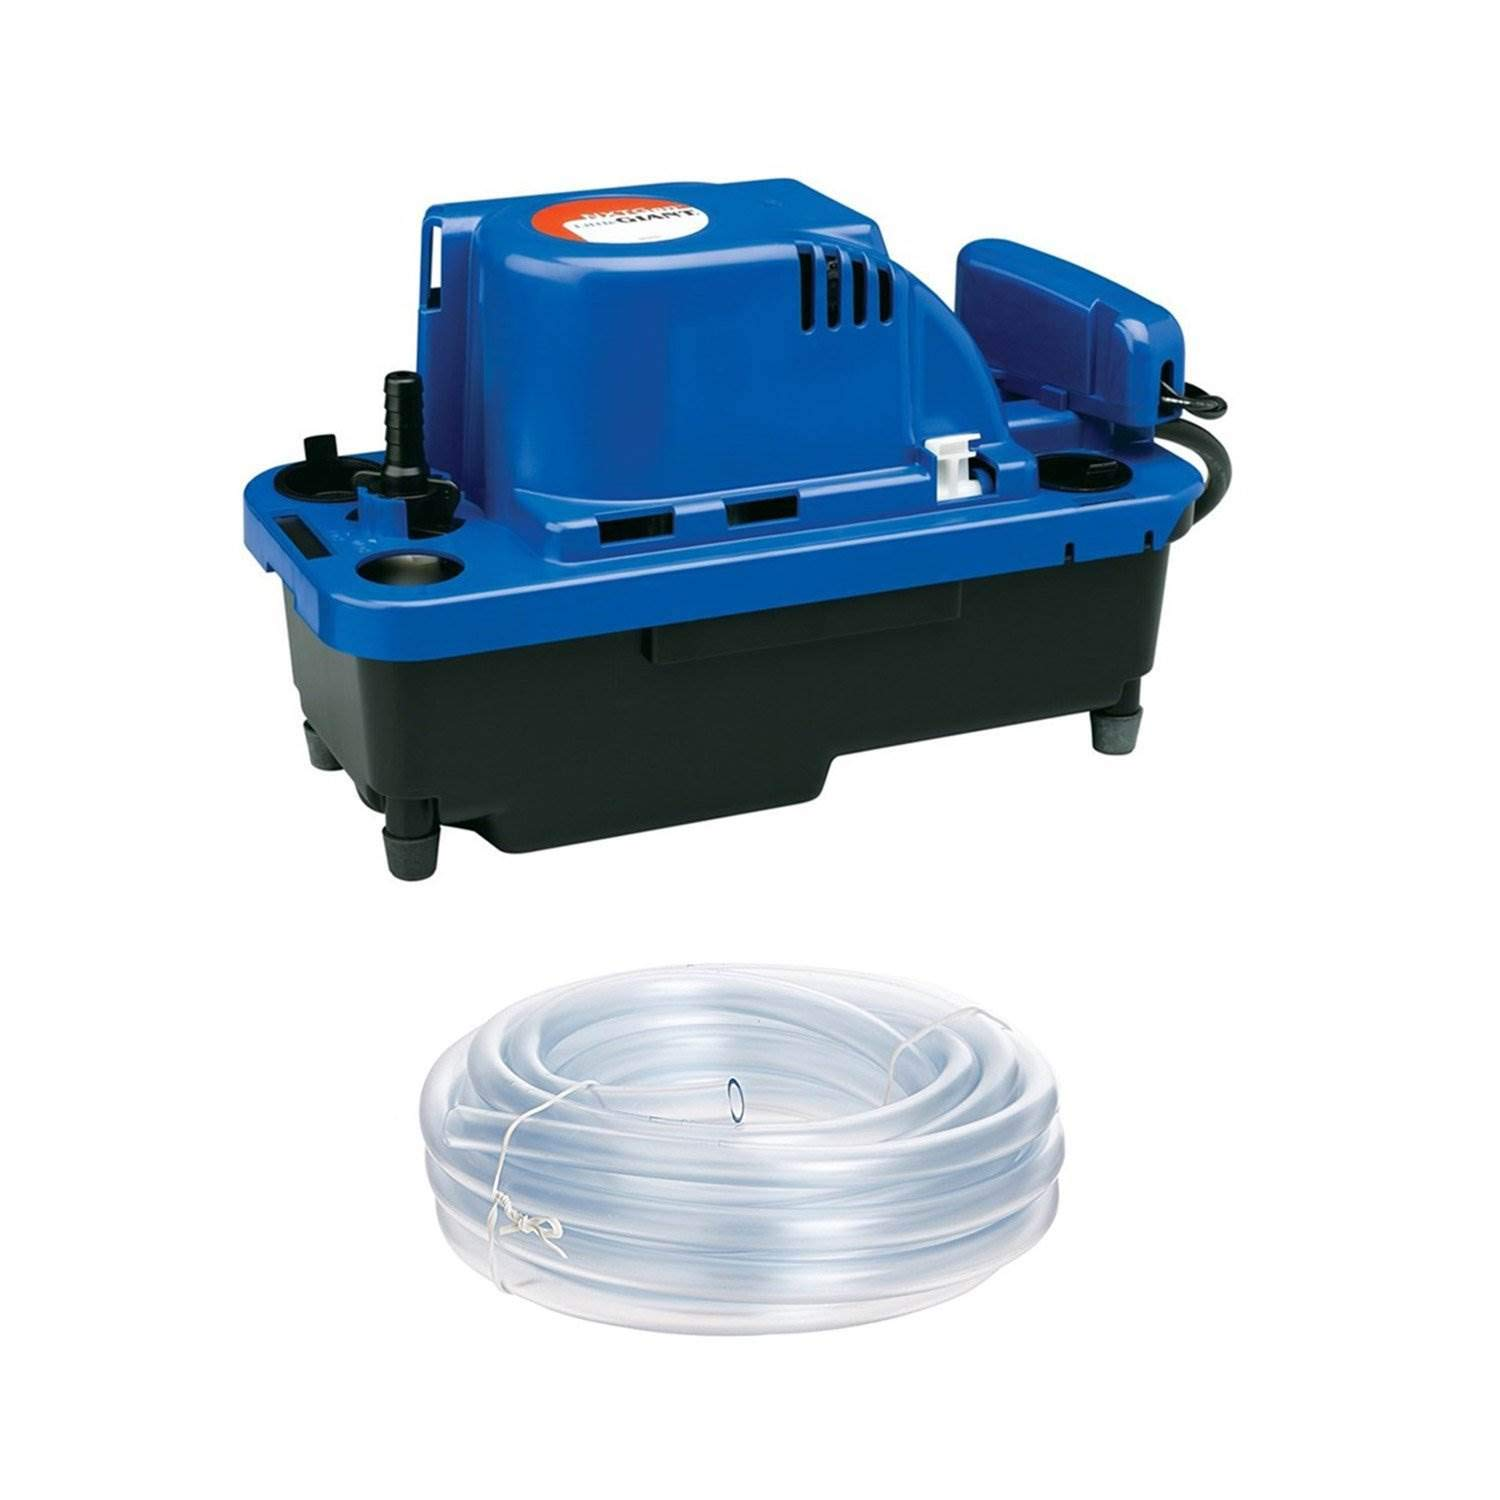 Little Giant VCMX-20ULST 554550 VCMX Series Automatic Condensate Removal Pump With Safety Switch (115 volts), 1/30 horsepower by Little Giant